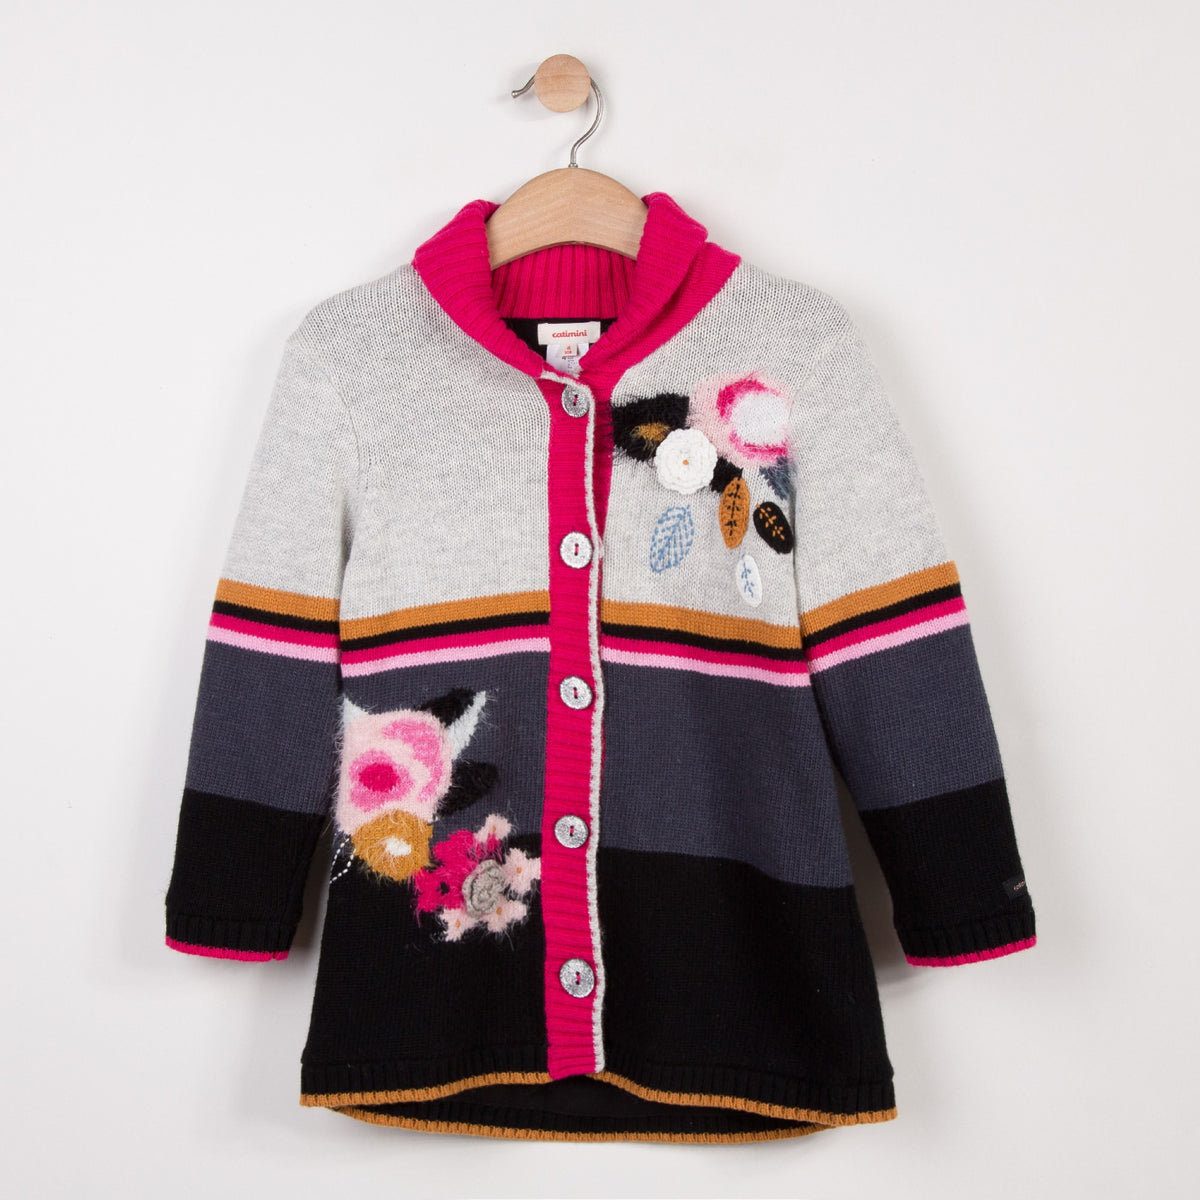 Jacket in soft and fluffy knit, with multicolored jacquard patterns. Soft, warm and padded fleece lining and two patch pockets. Catimini signature colors.